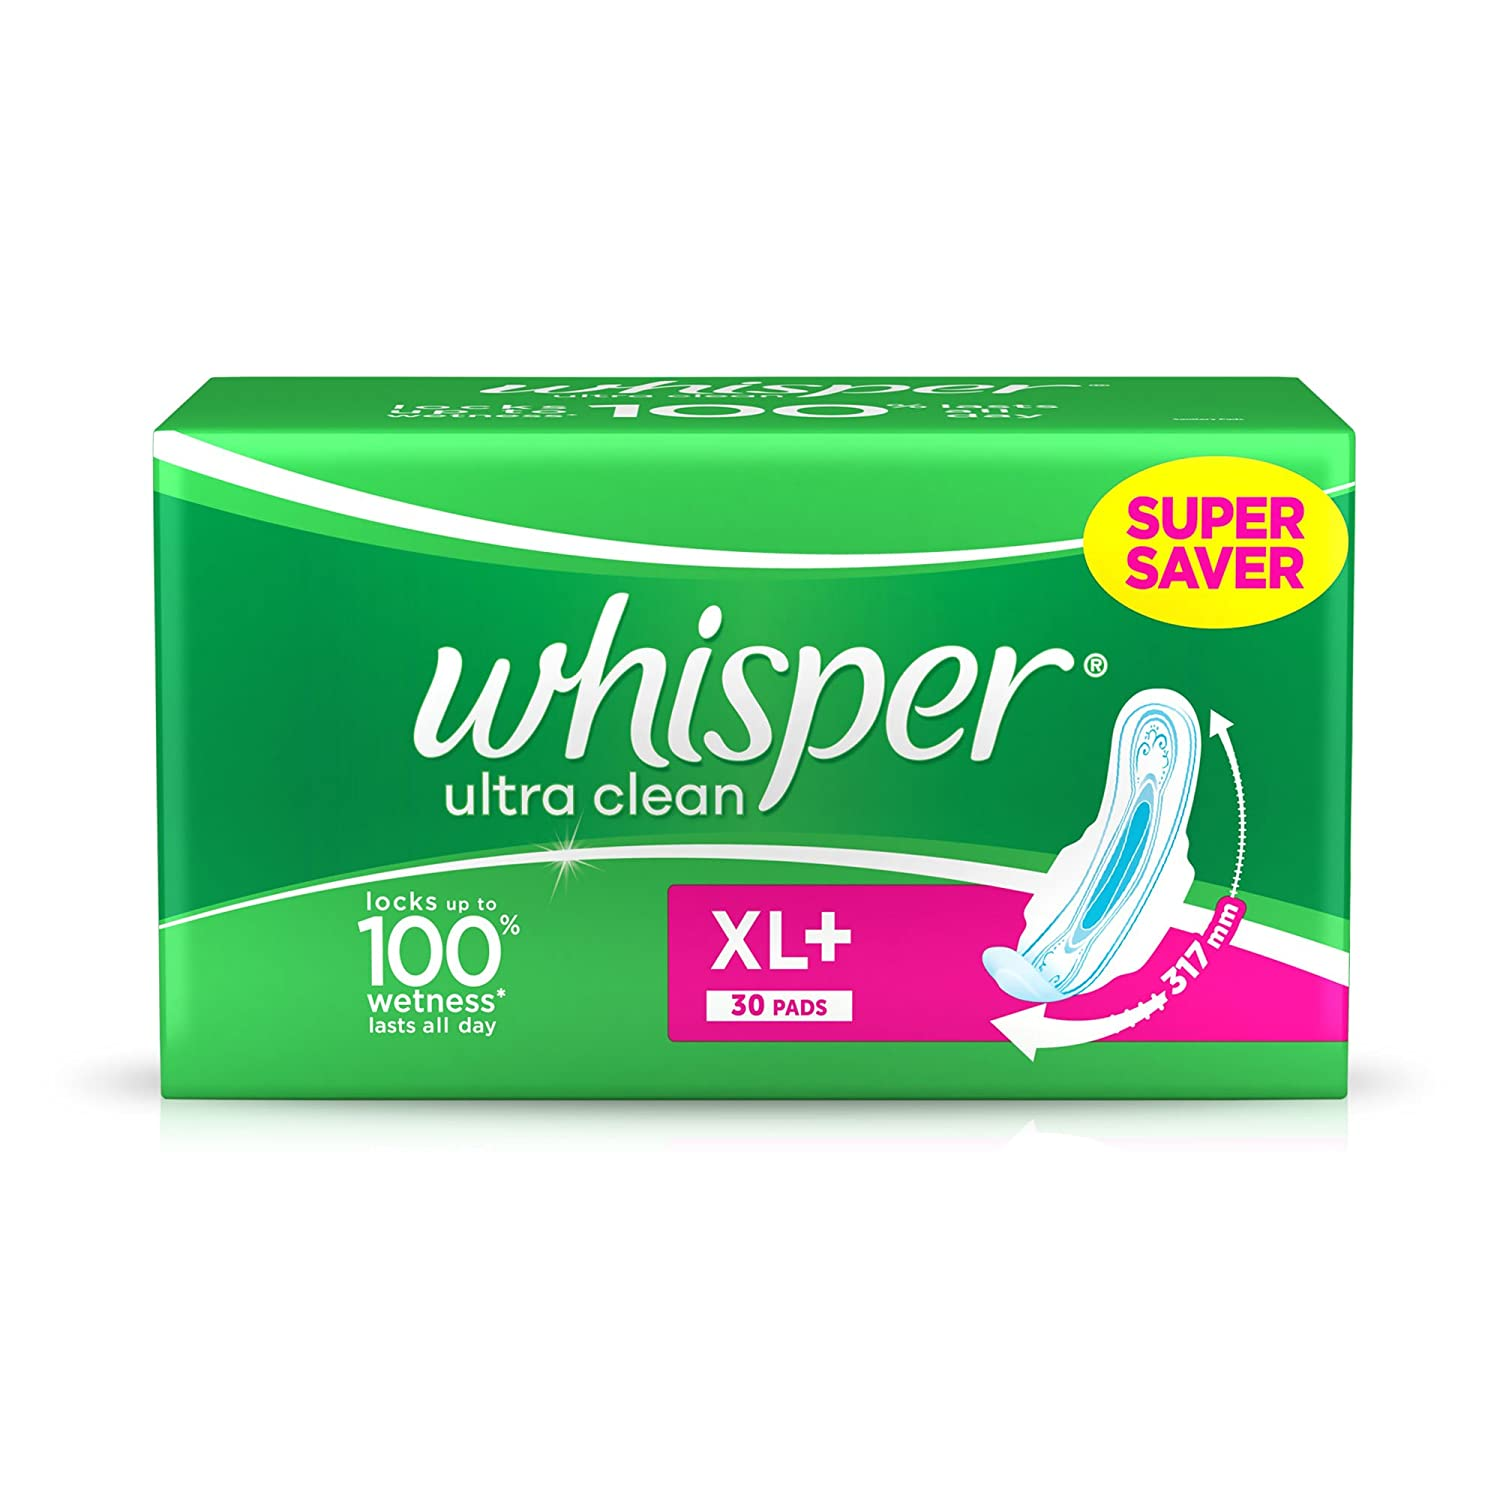 Amazon.com: Whisper Ultra Clean -XL Wings (30 Pads): Health ...